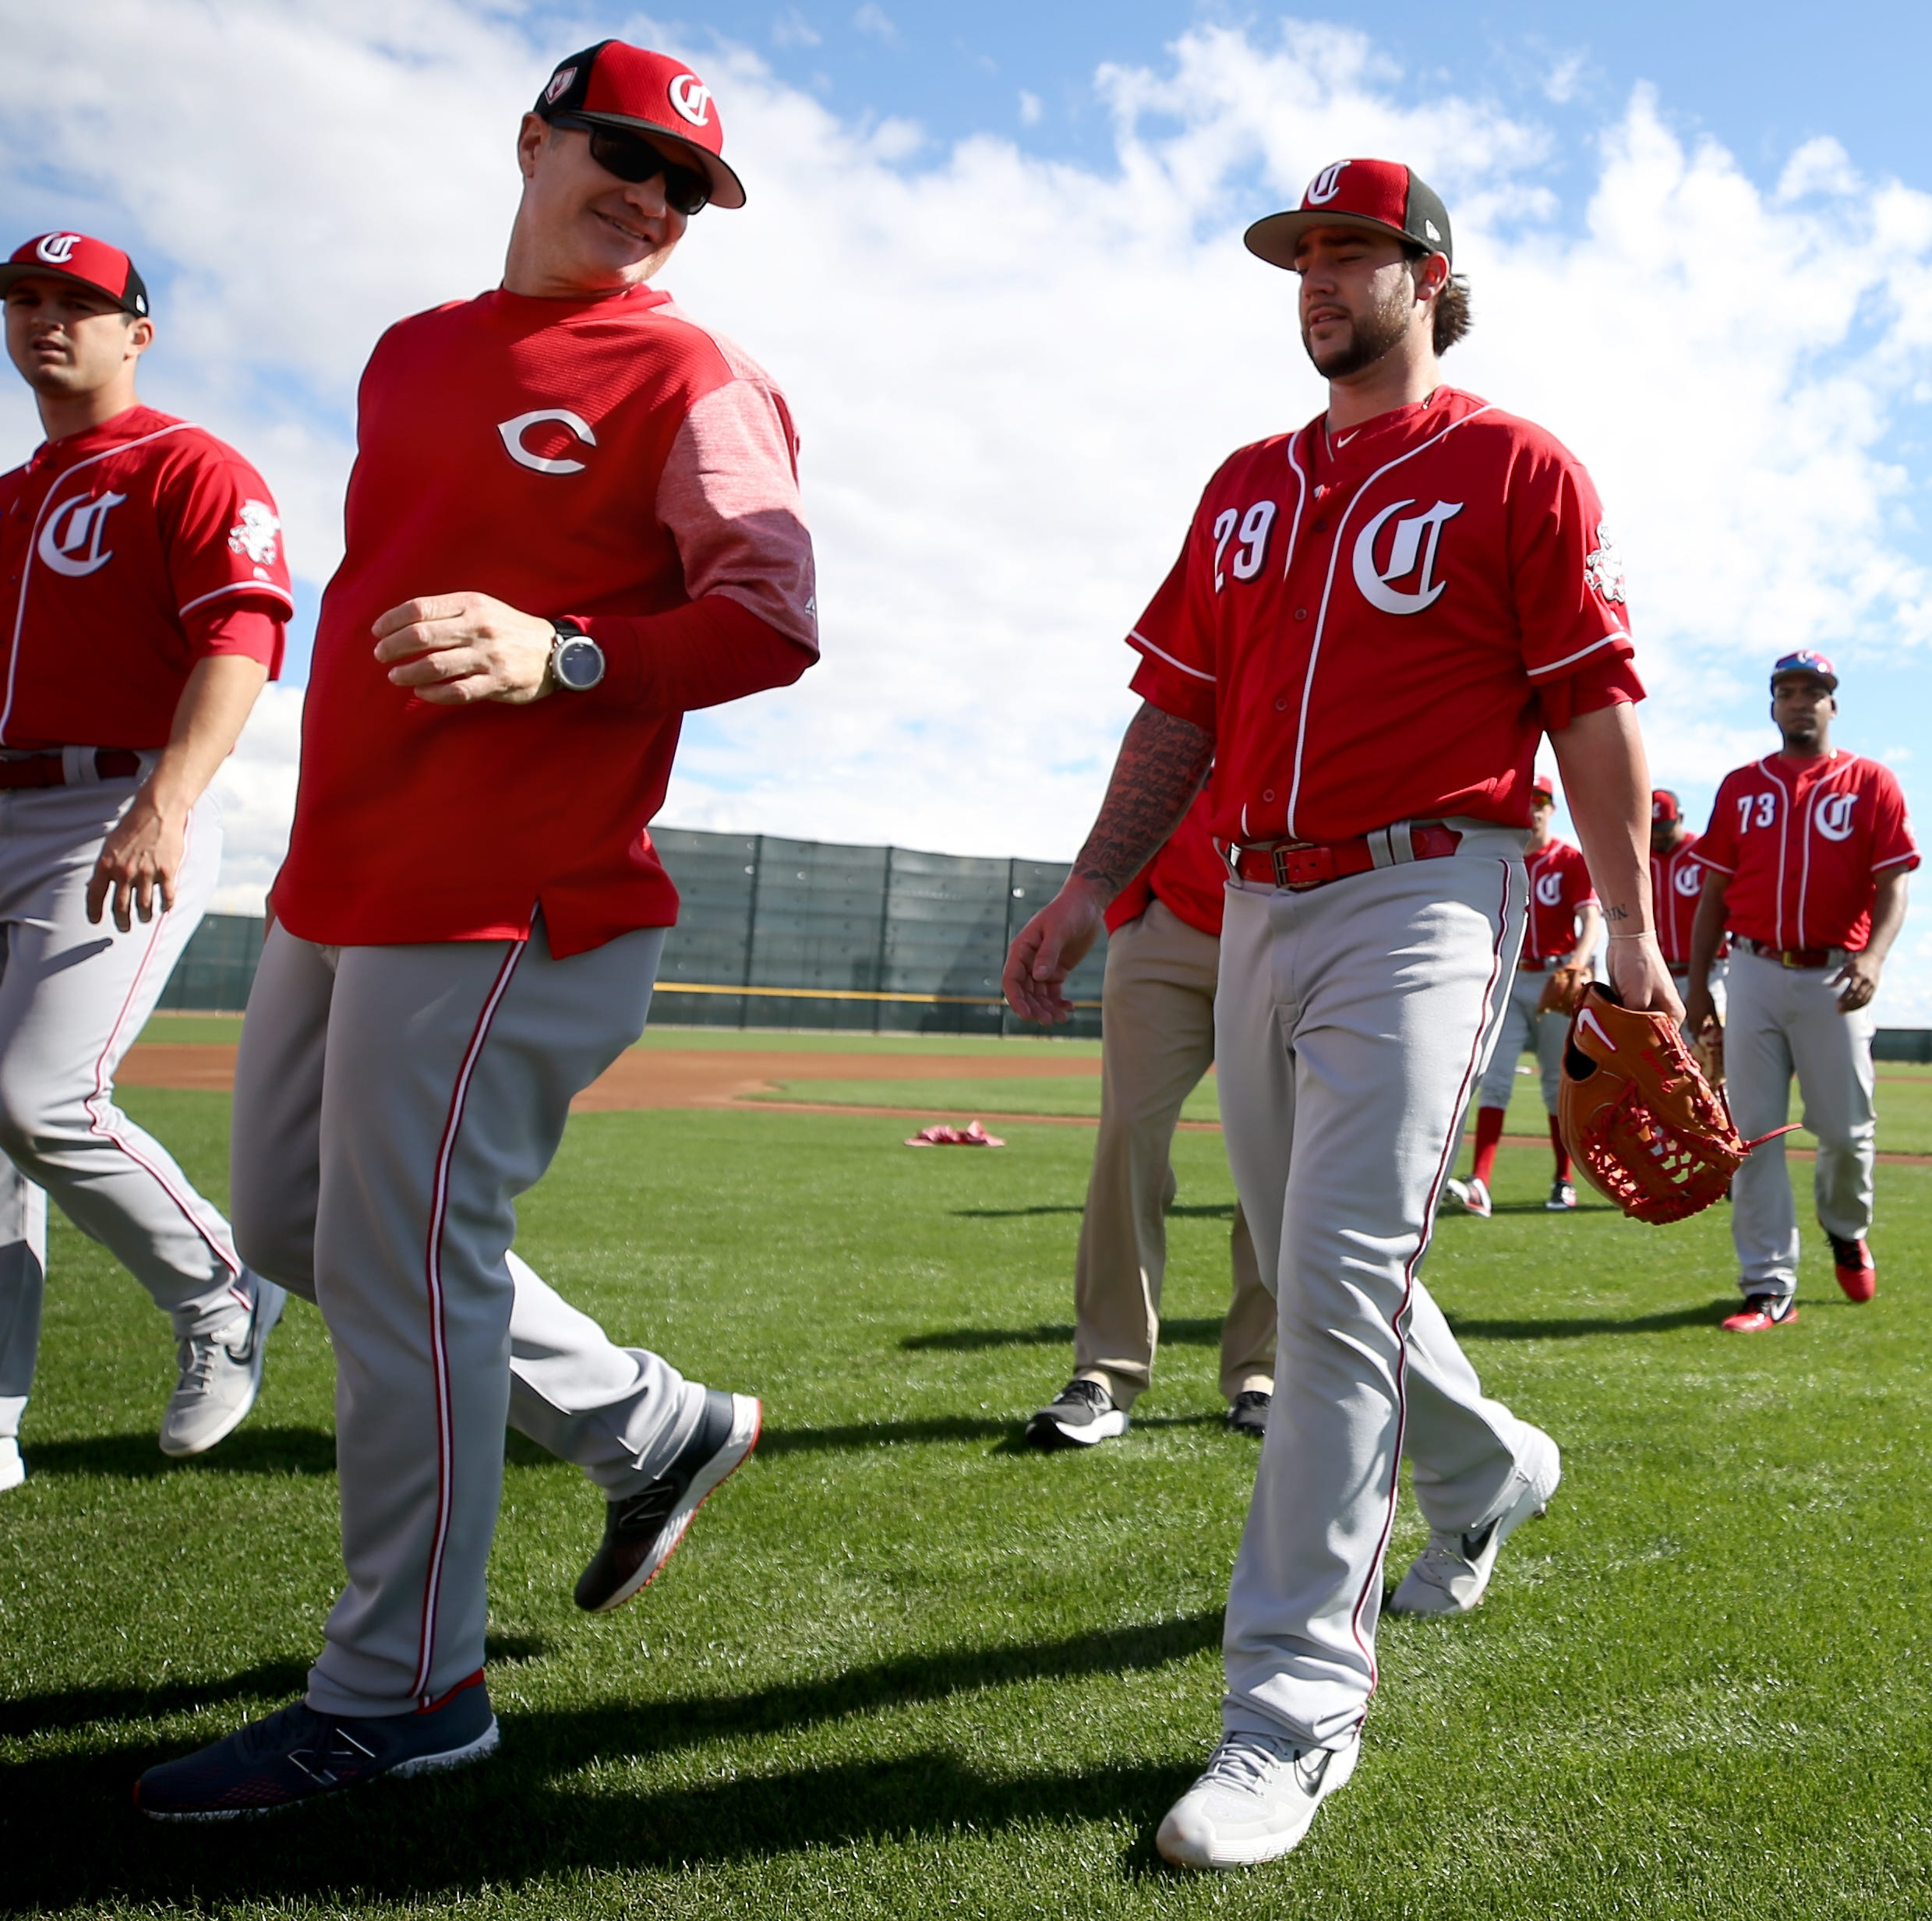 RedsXtra: If nice guys finish first, the Reds have a chance under David Bell